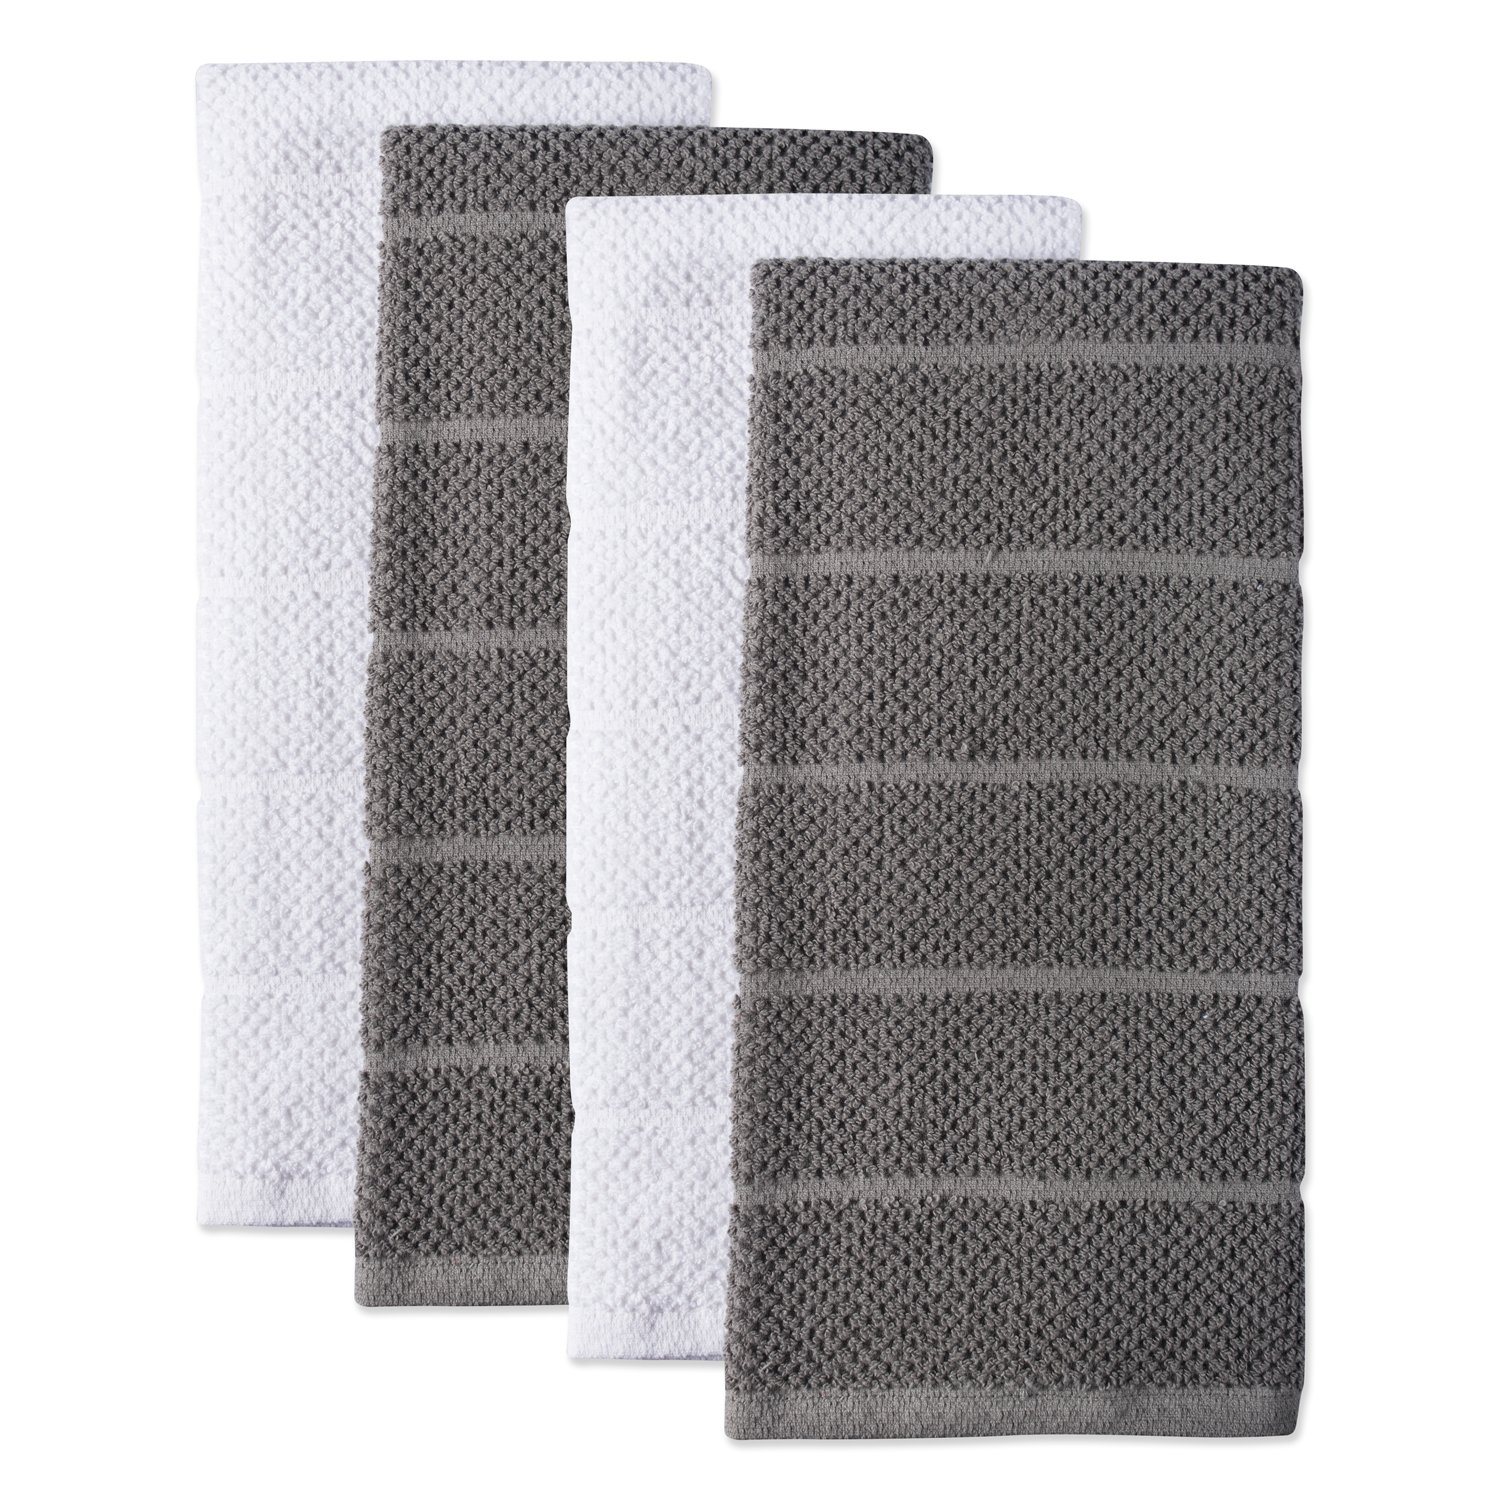 DII 100% Cotton, Ultra-Absorbent, Cleaning, Drying, Everyday Kitchen Basic, Luxury Chef Terry Dishtowel, 16 x 26 Set of 4-Gray